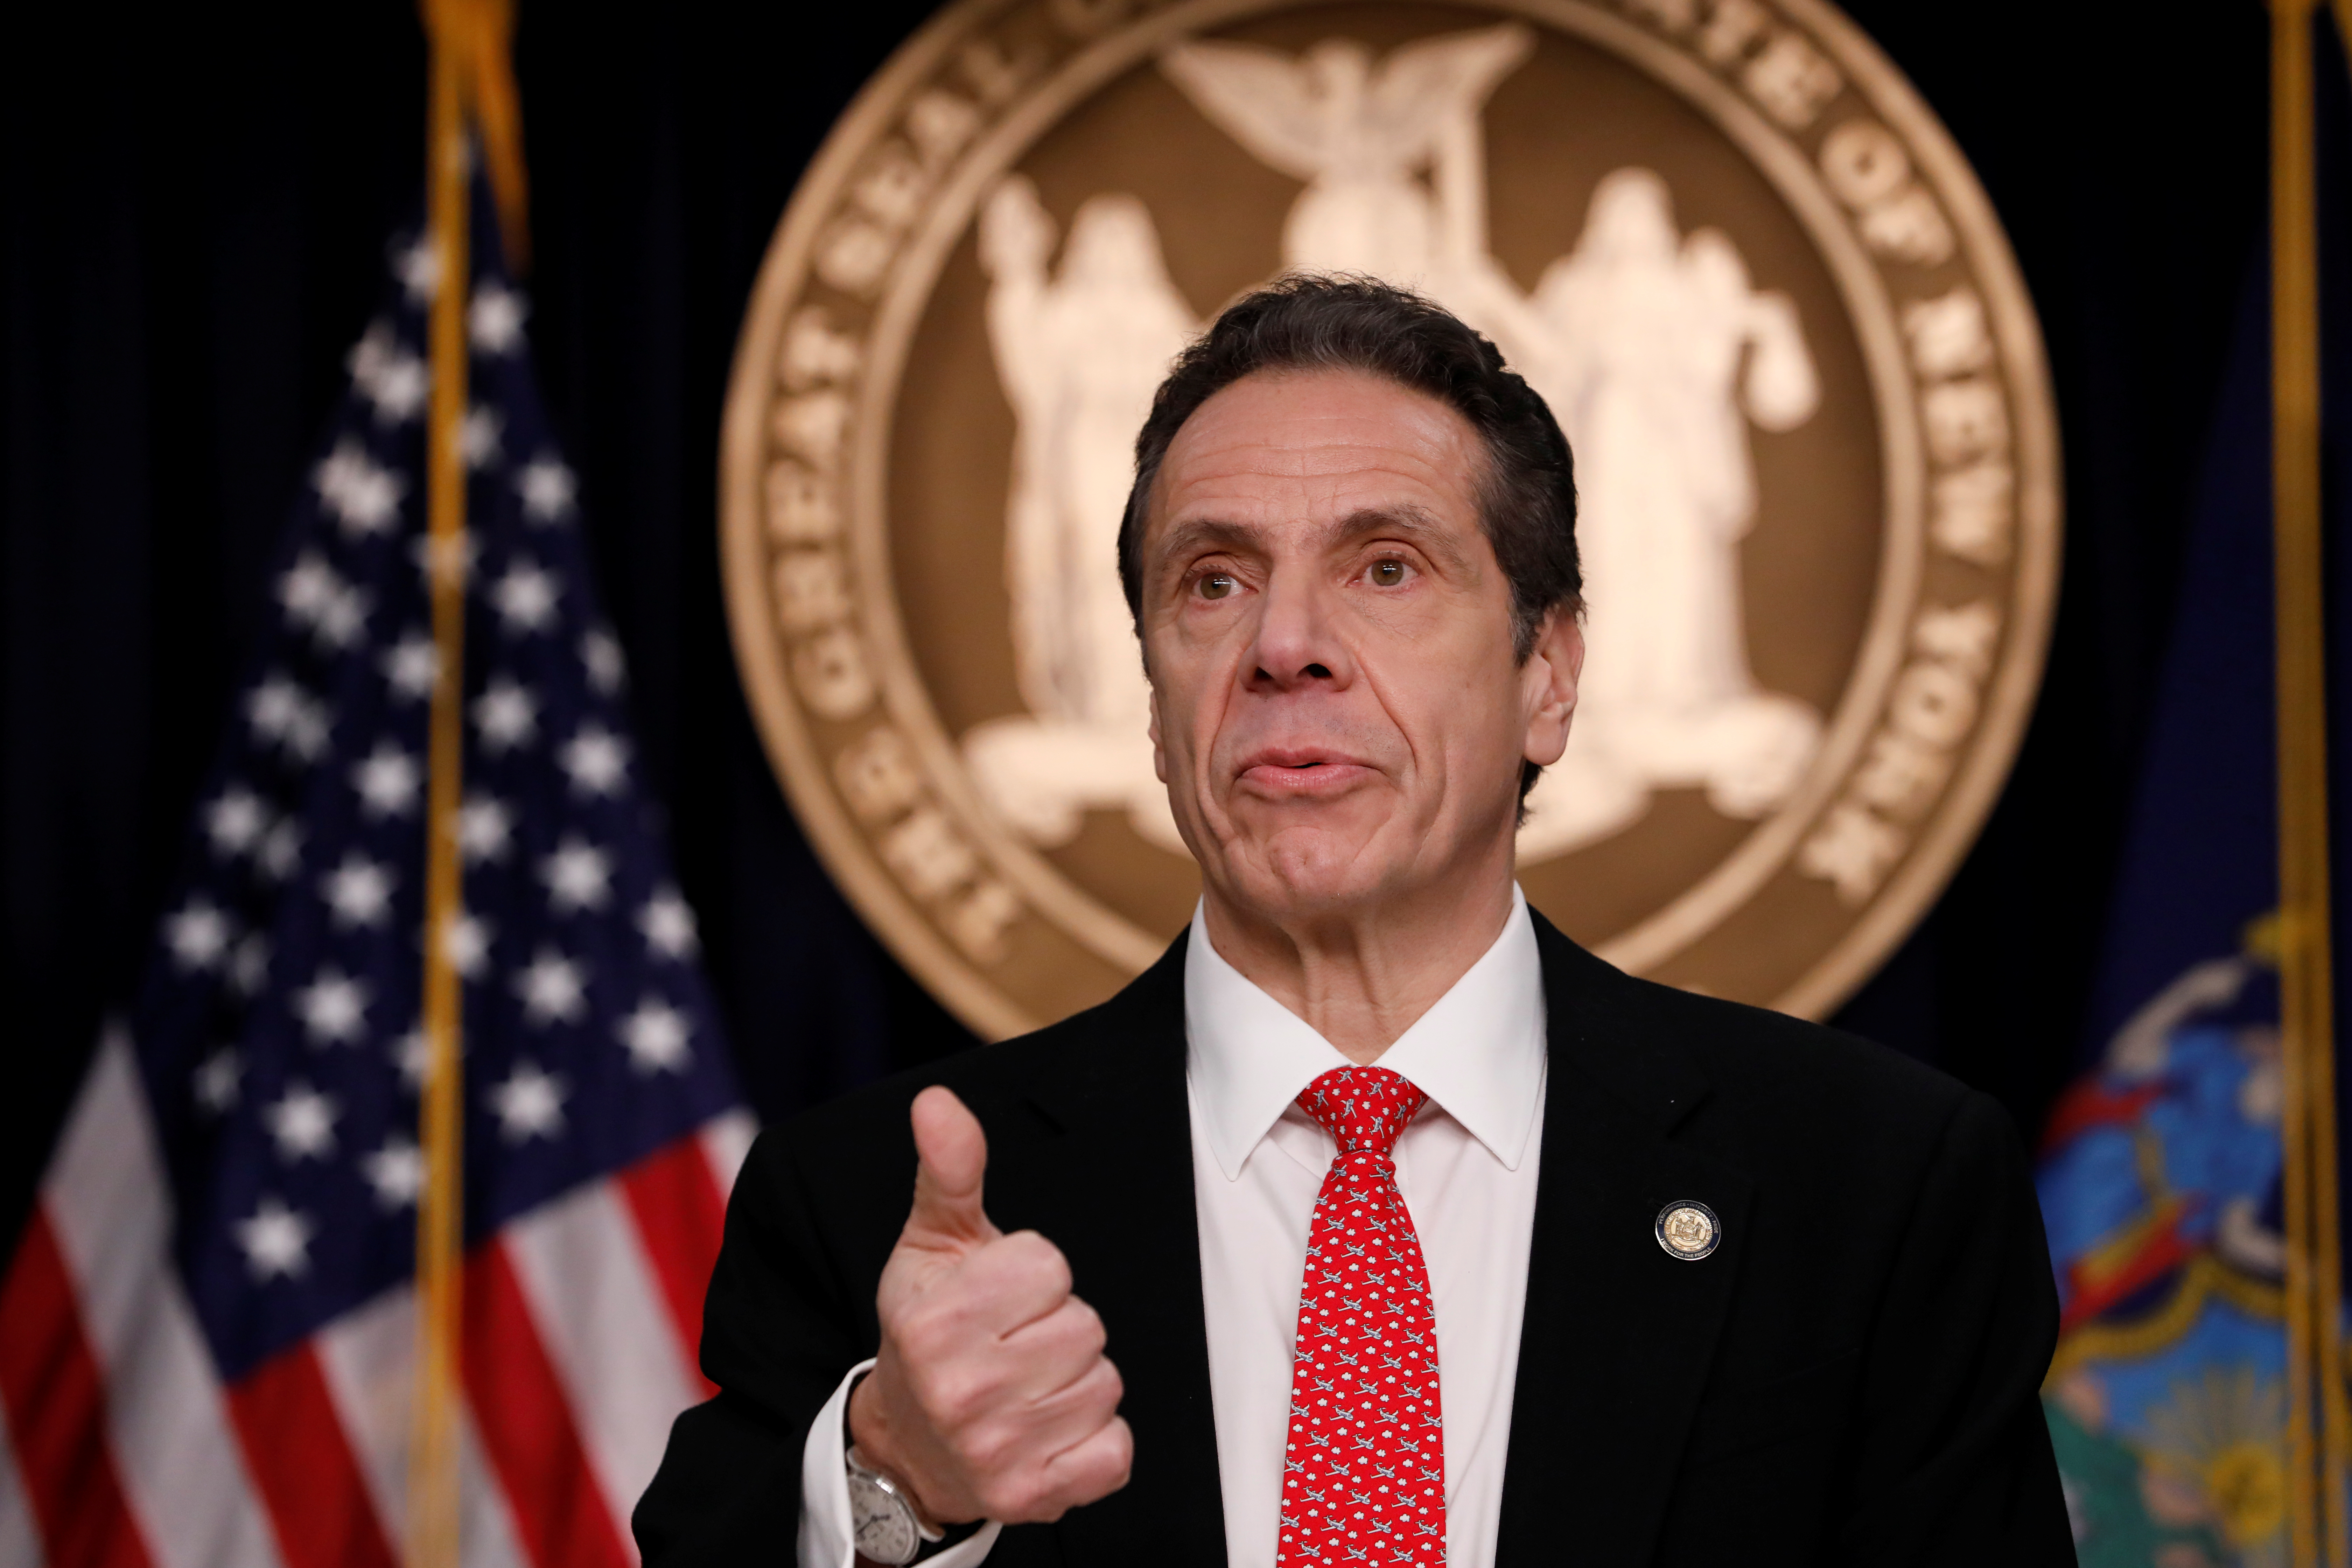 Cuomo Emerges as Democratic Counter to Trump Virus Response